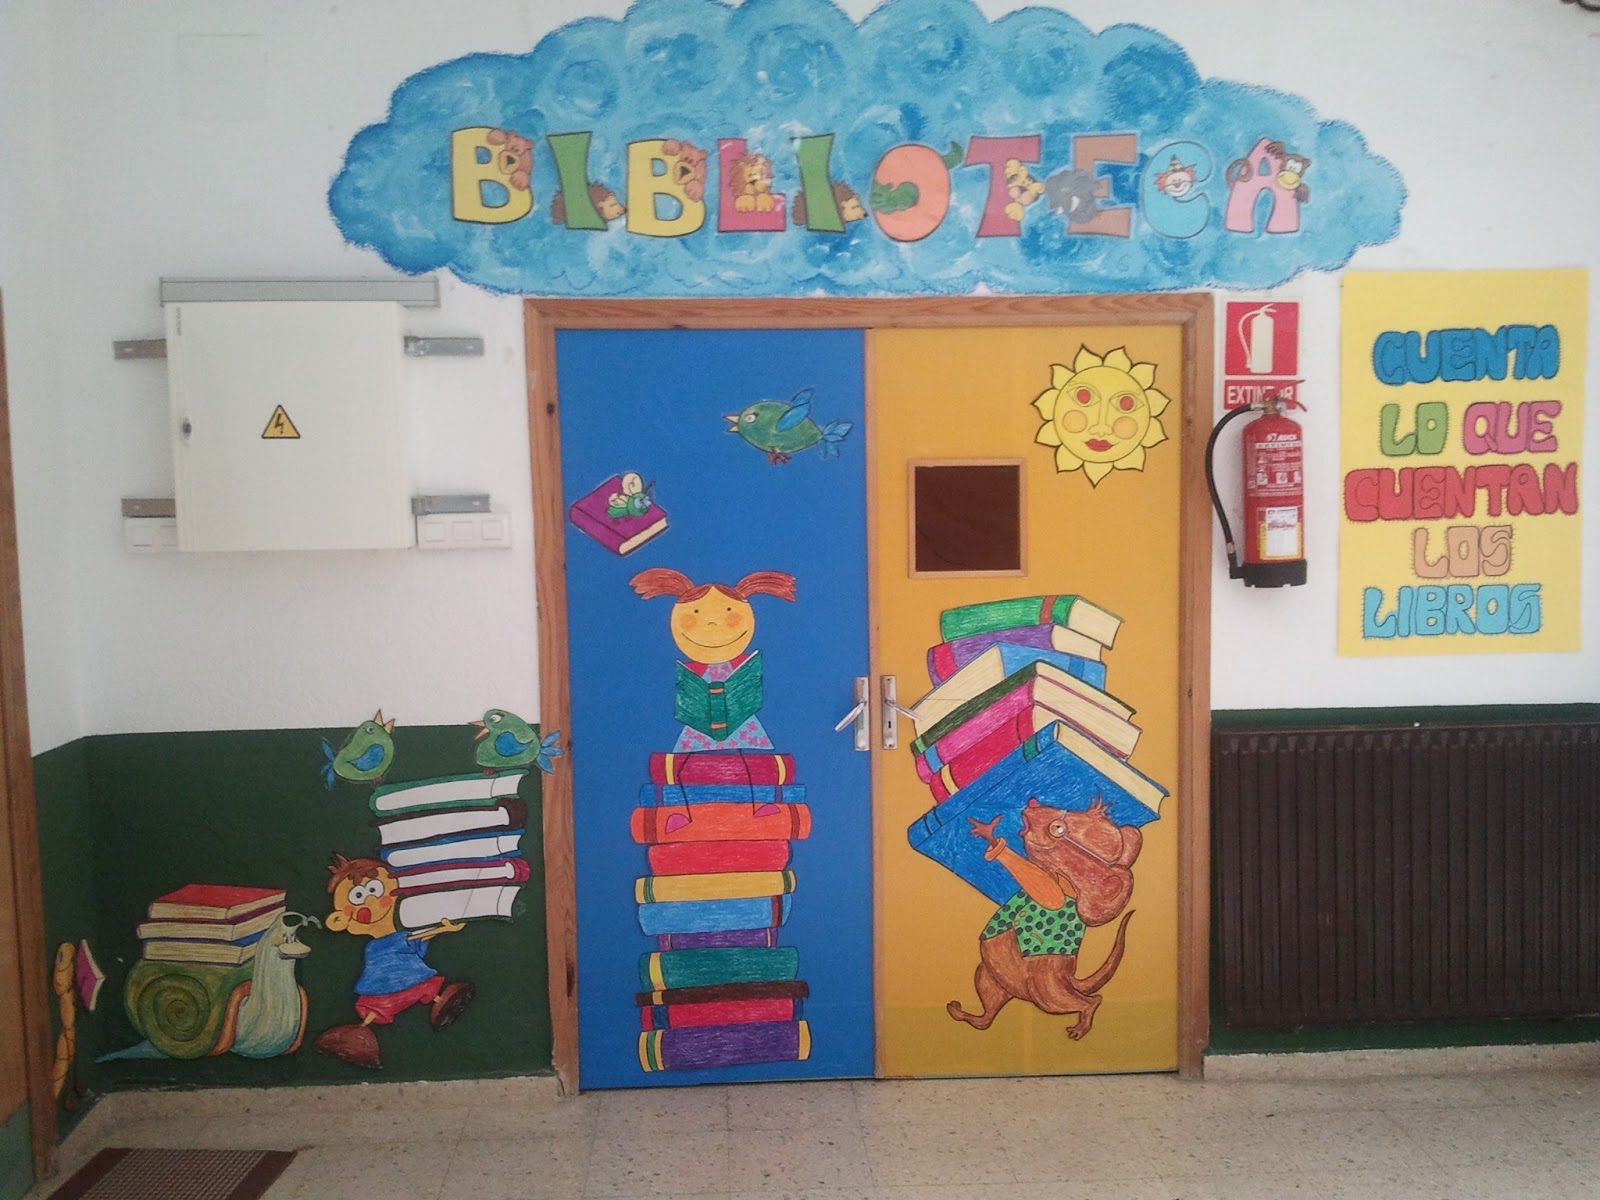 Biblioteca escolar bibliotucci nueva decoraci n de la for Decoracion salon infantil